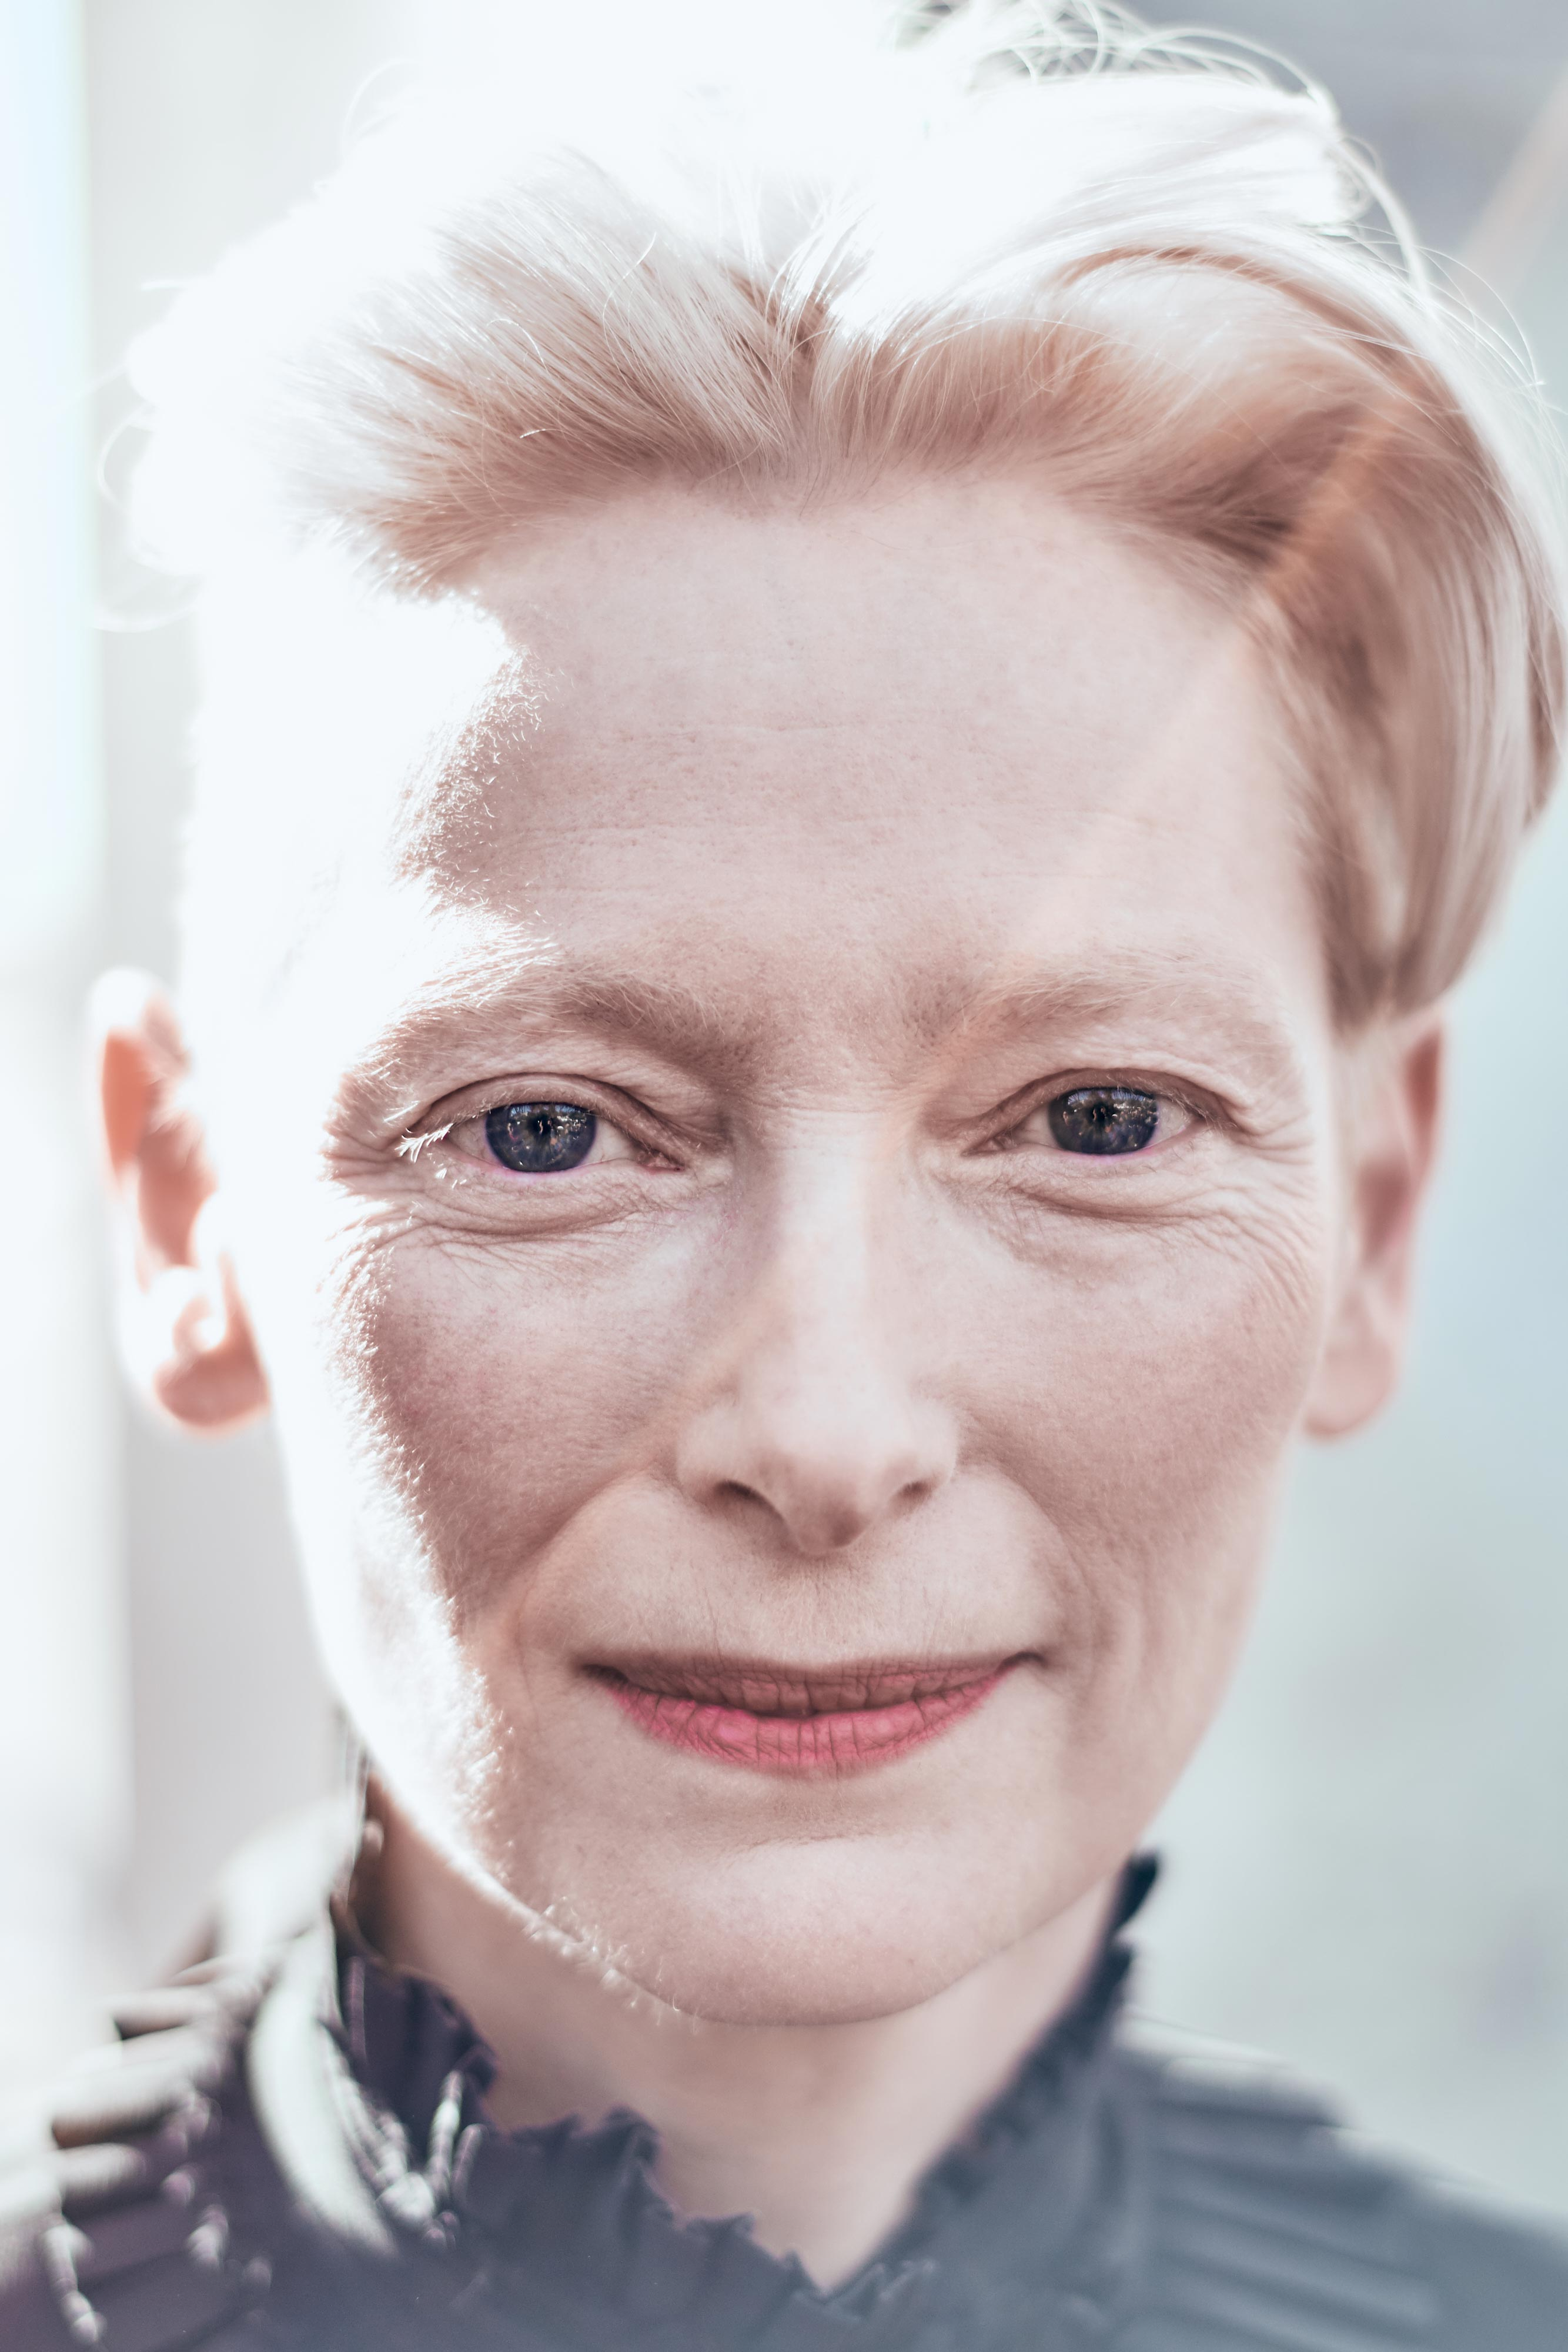 The 59-year old daughter of father Sir John Swinton and mother Judith Balfour Killen Tilda Swinton in 2020 photo. Tilda Swinton earned a 82 million dollar salary - leaving the net worth at 245 million in 2020